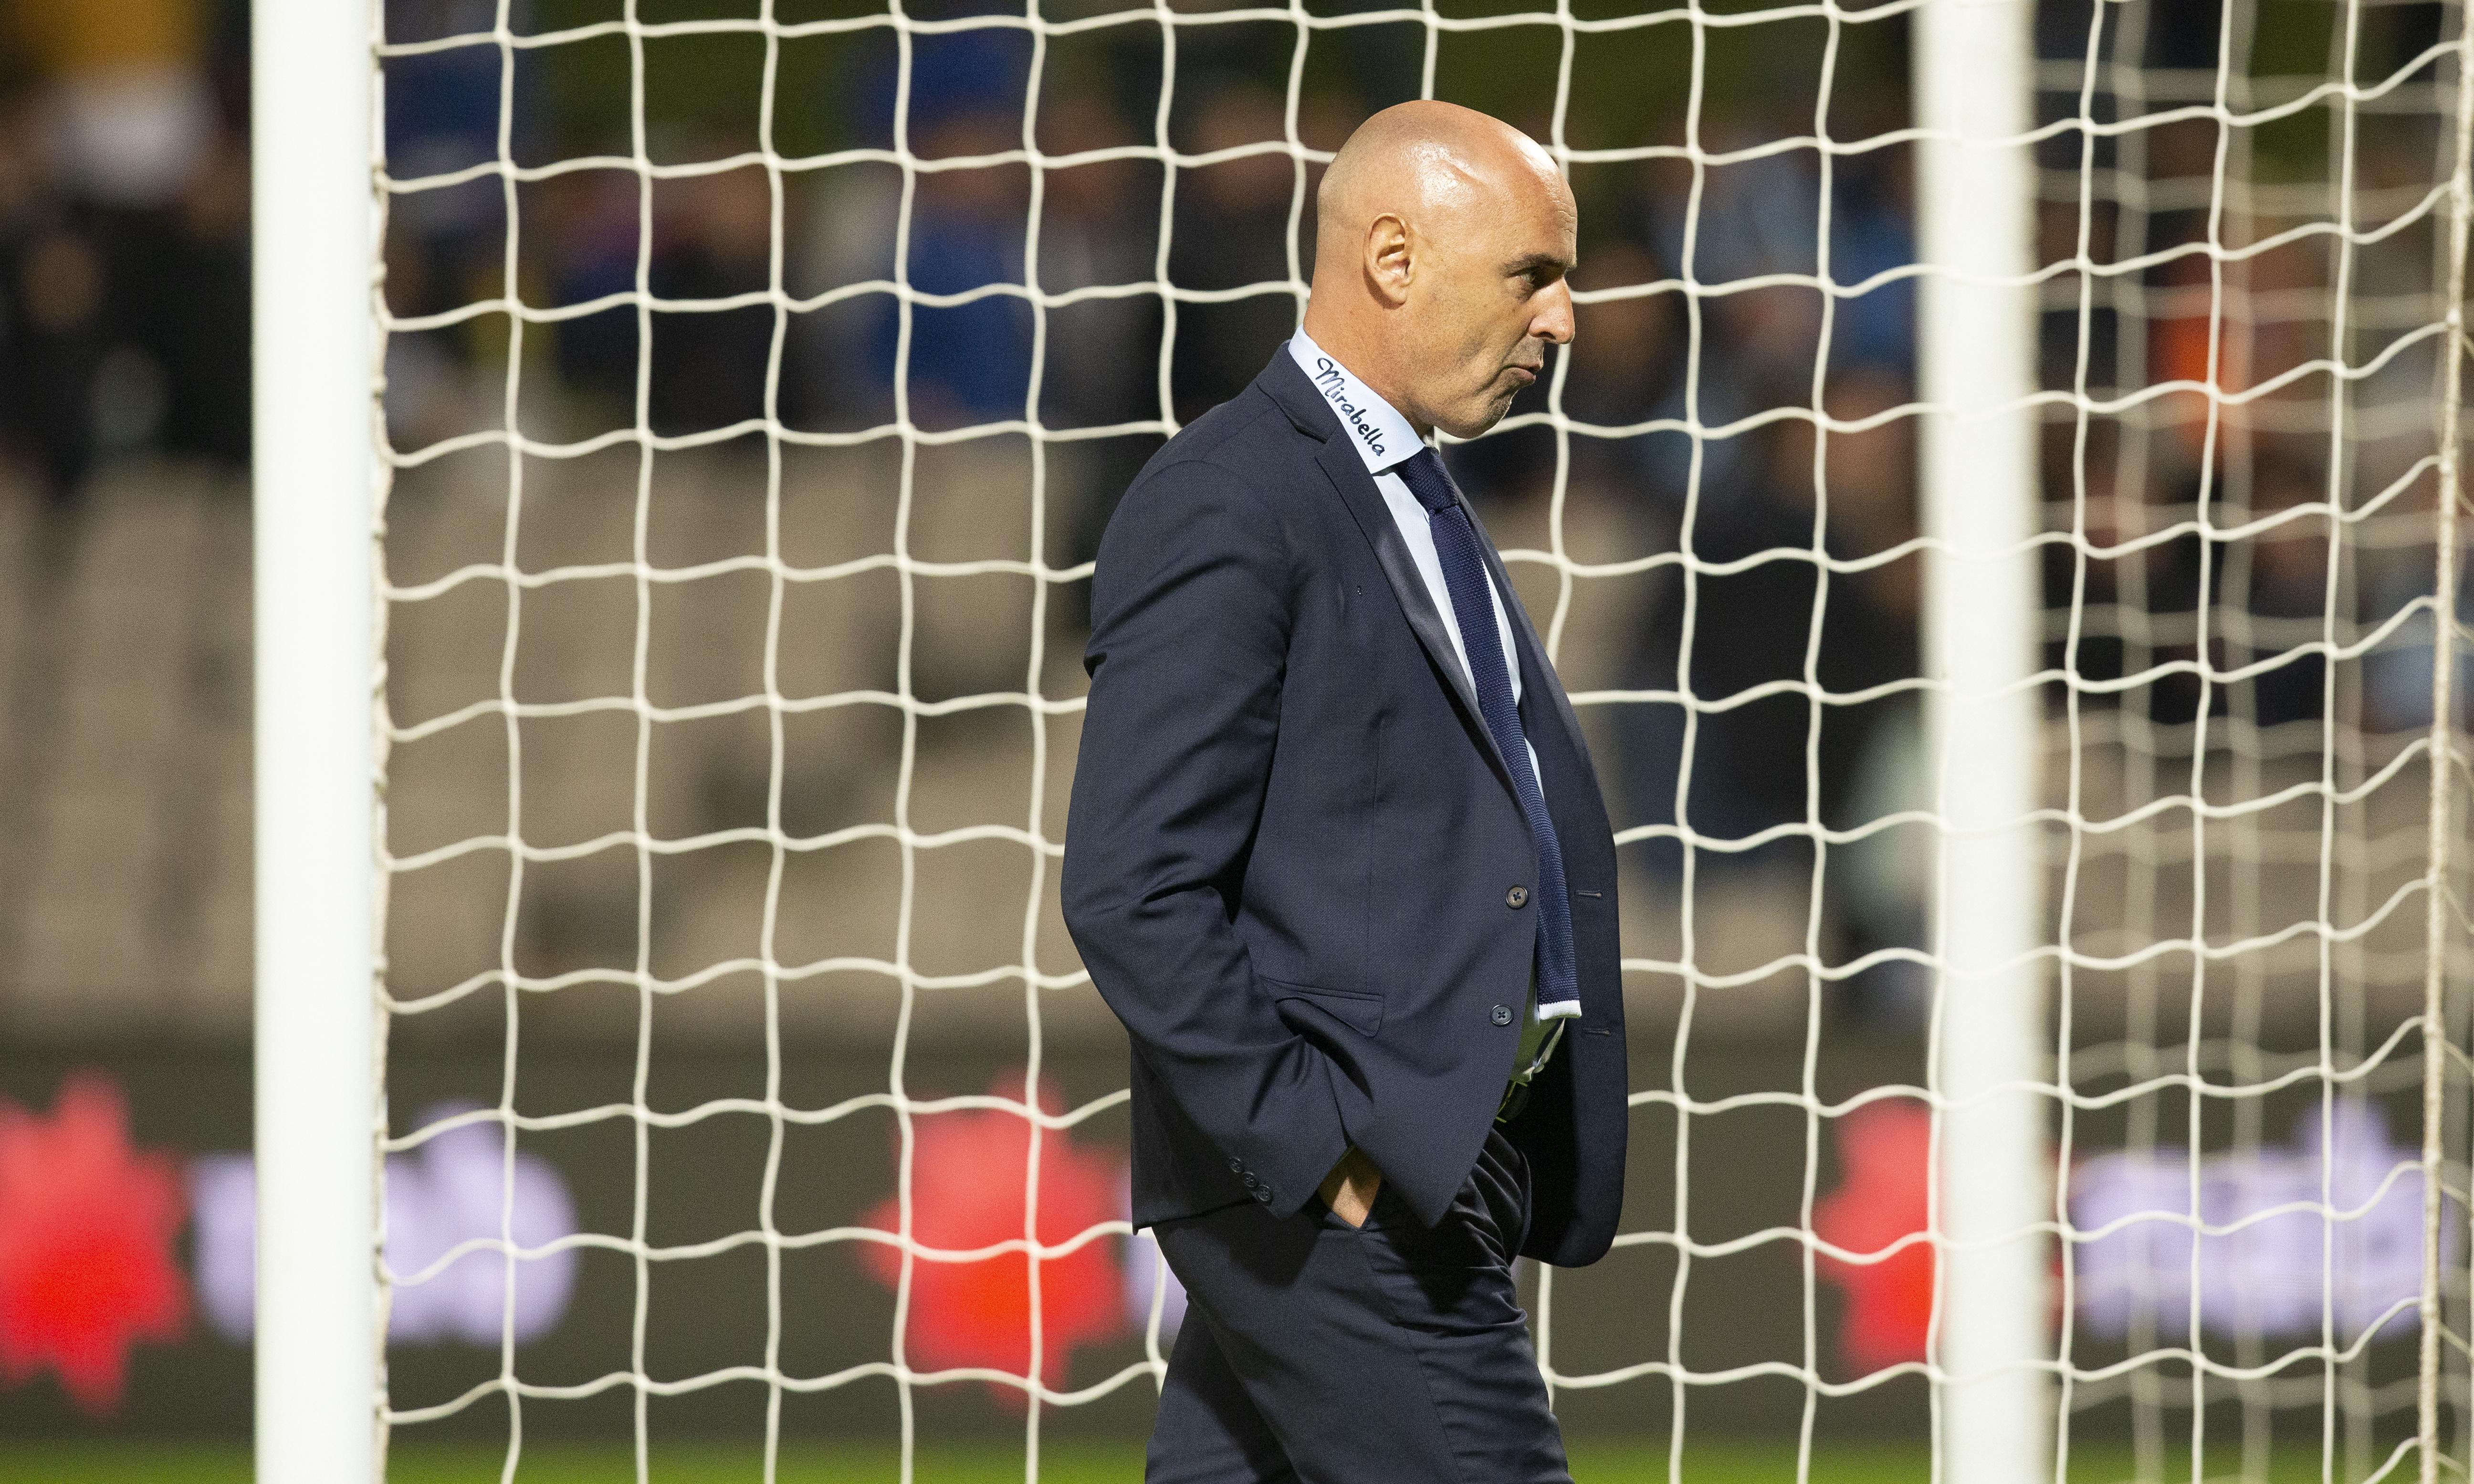 Kevin Muscat stands down as Melbourne Victory coach